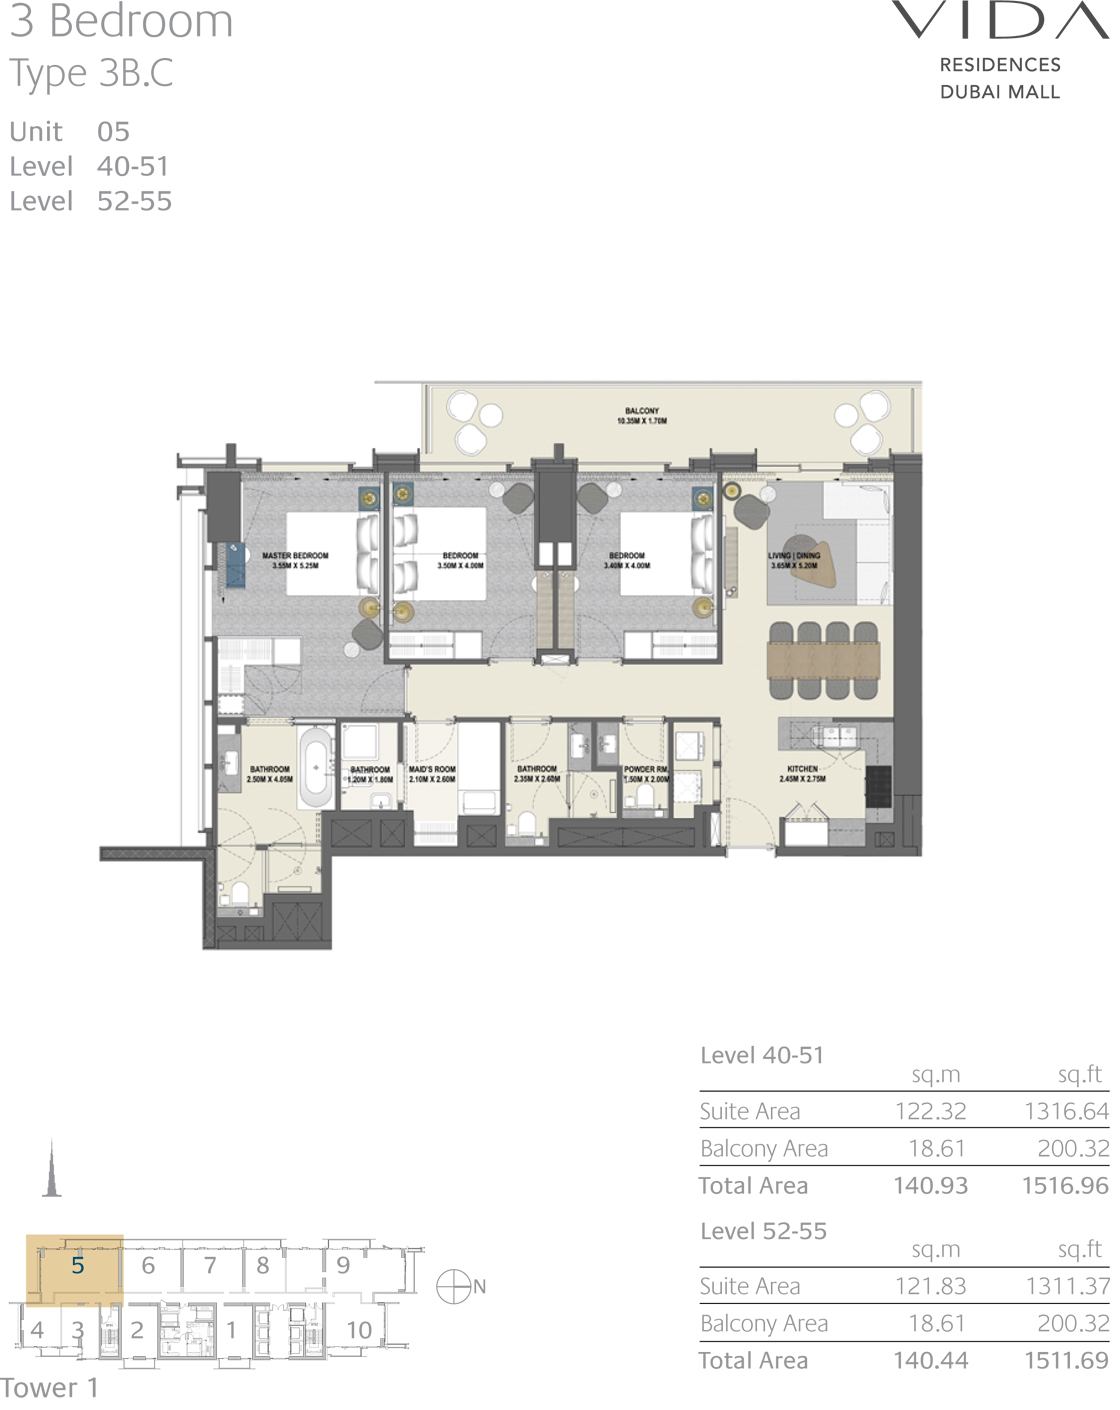 3 Bedroom Type 3B.C Unit 05 Level 40-51 Level 52-55